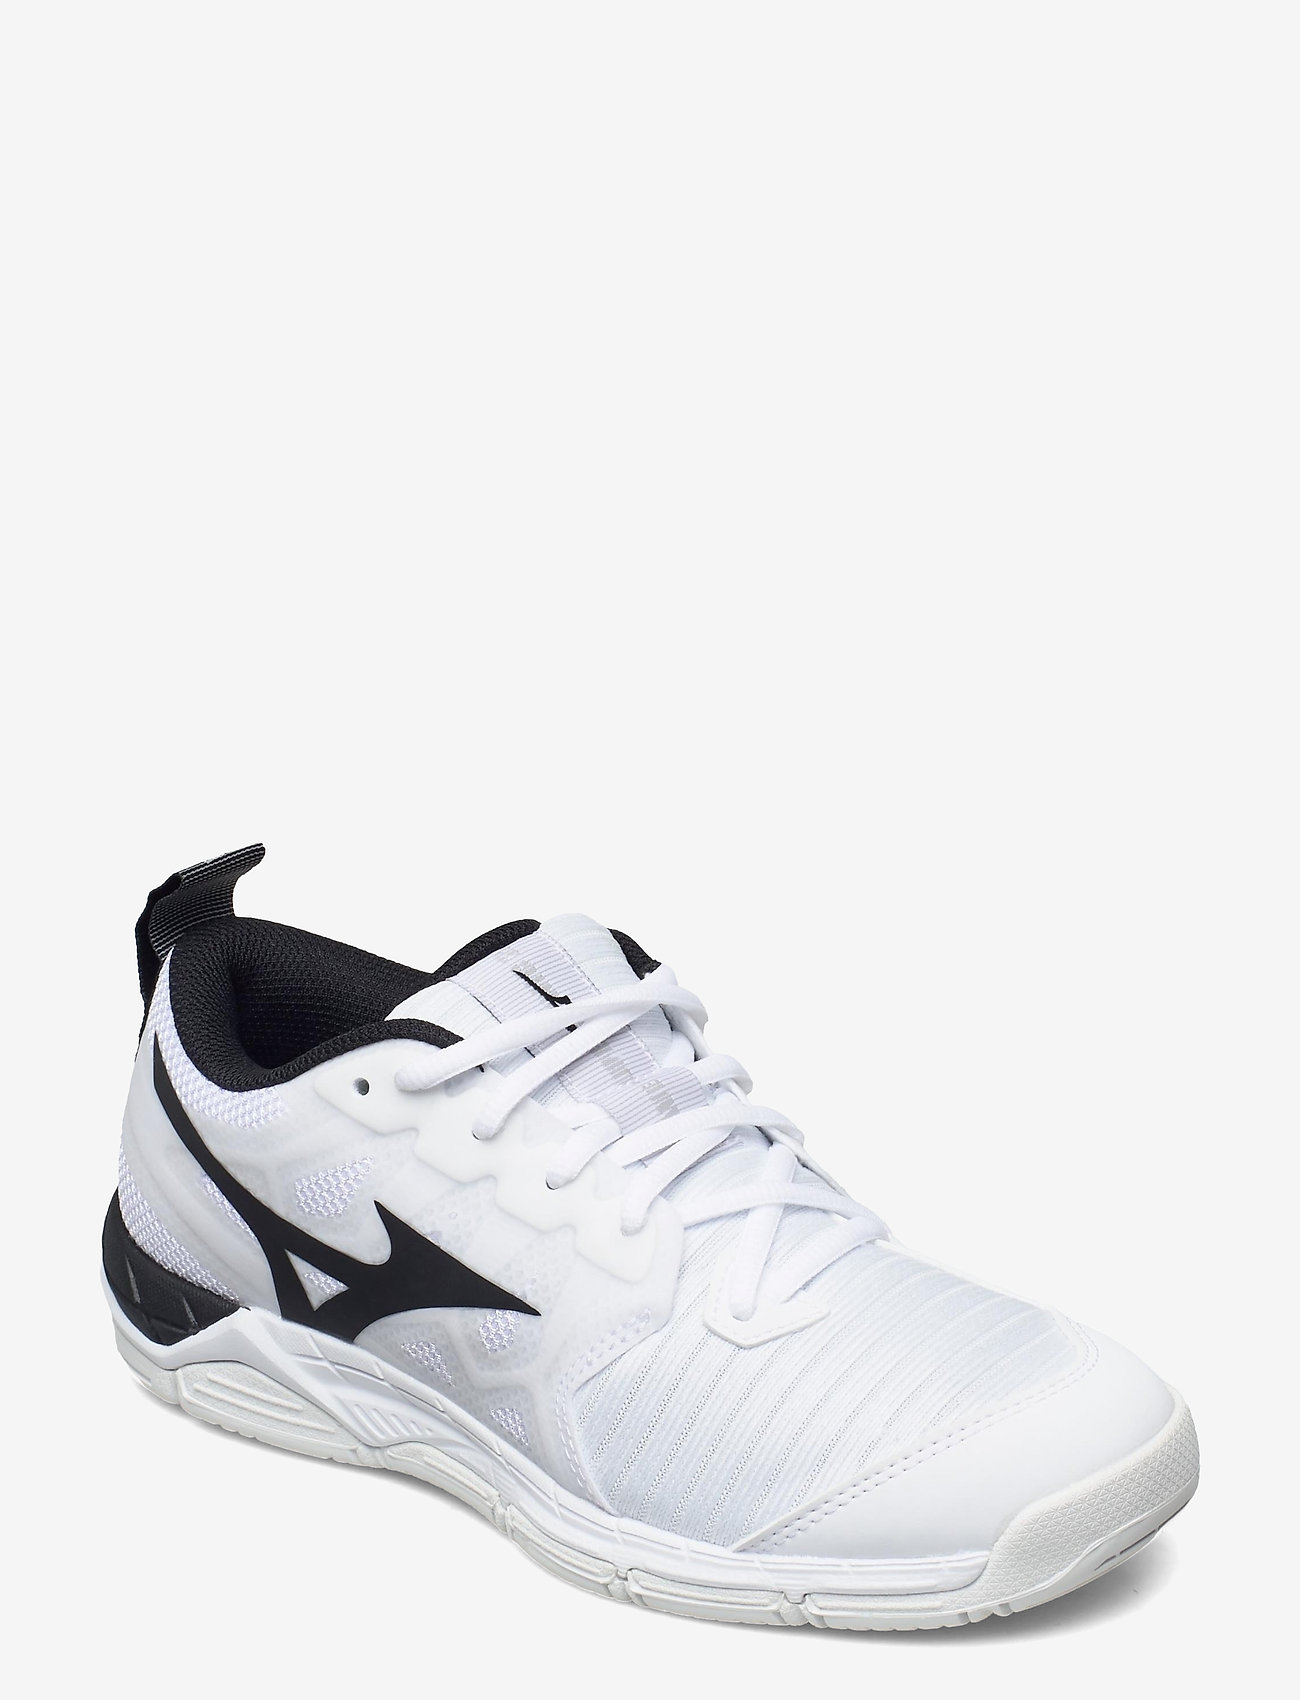 Mizuno - WAVE SUPERSONIC 2(U) - inomhusskor - white / black - 0